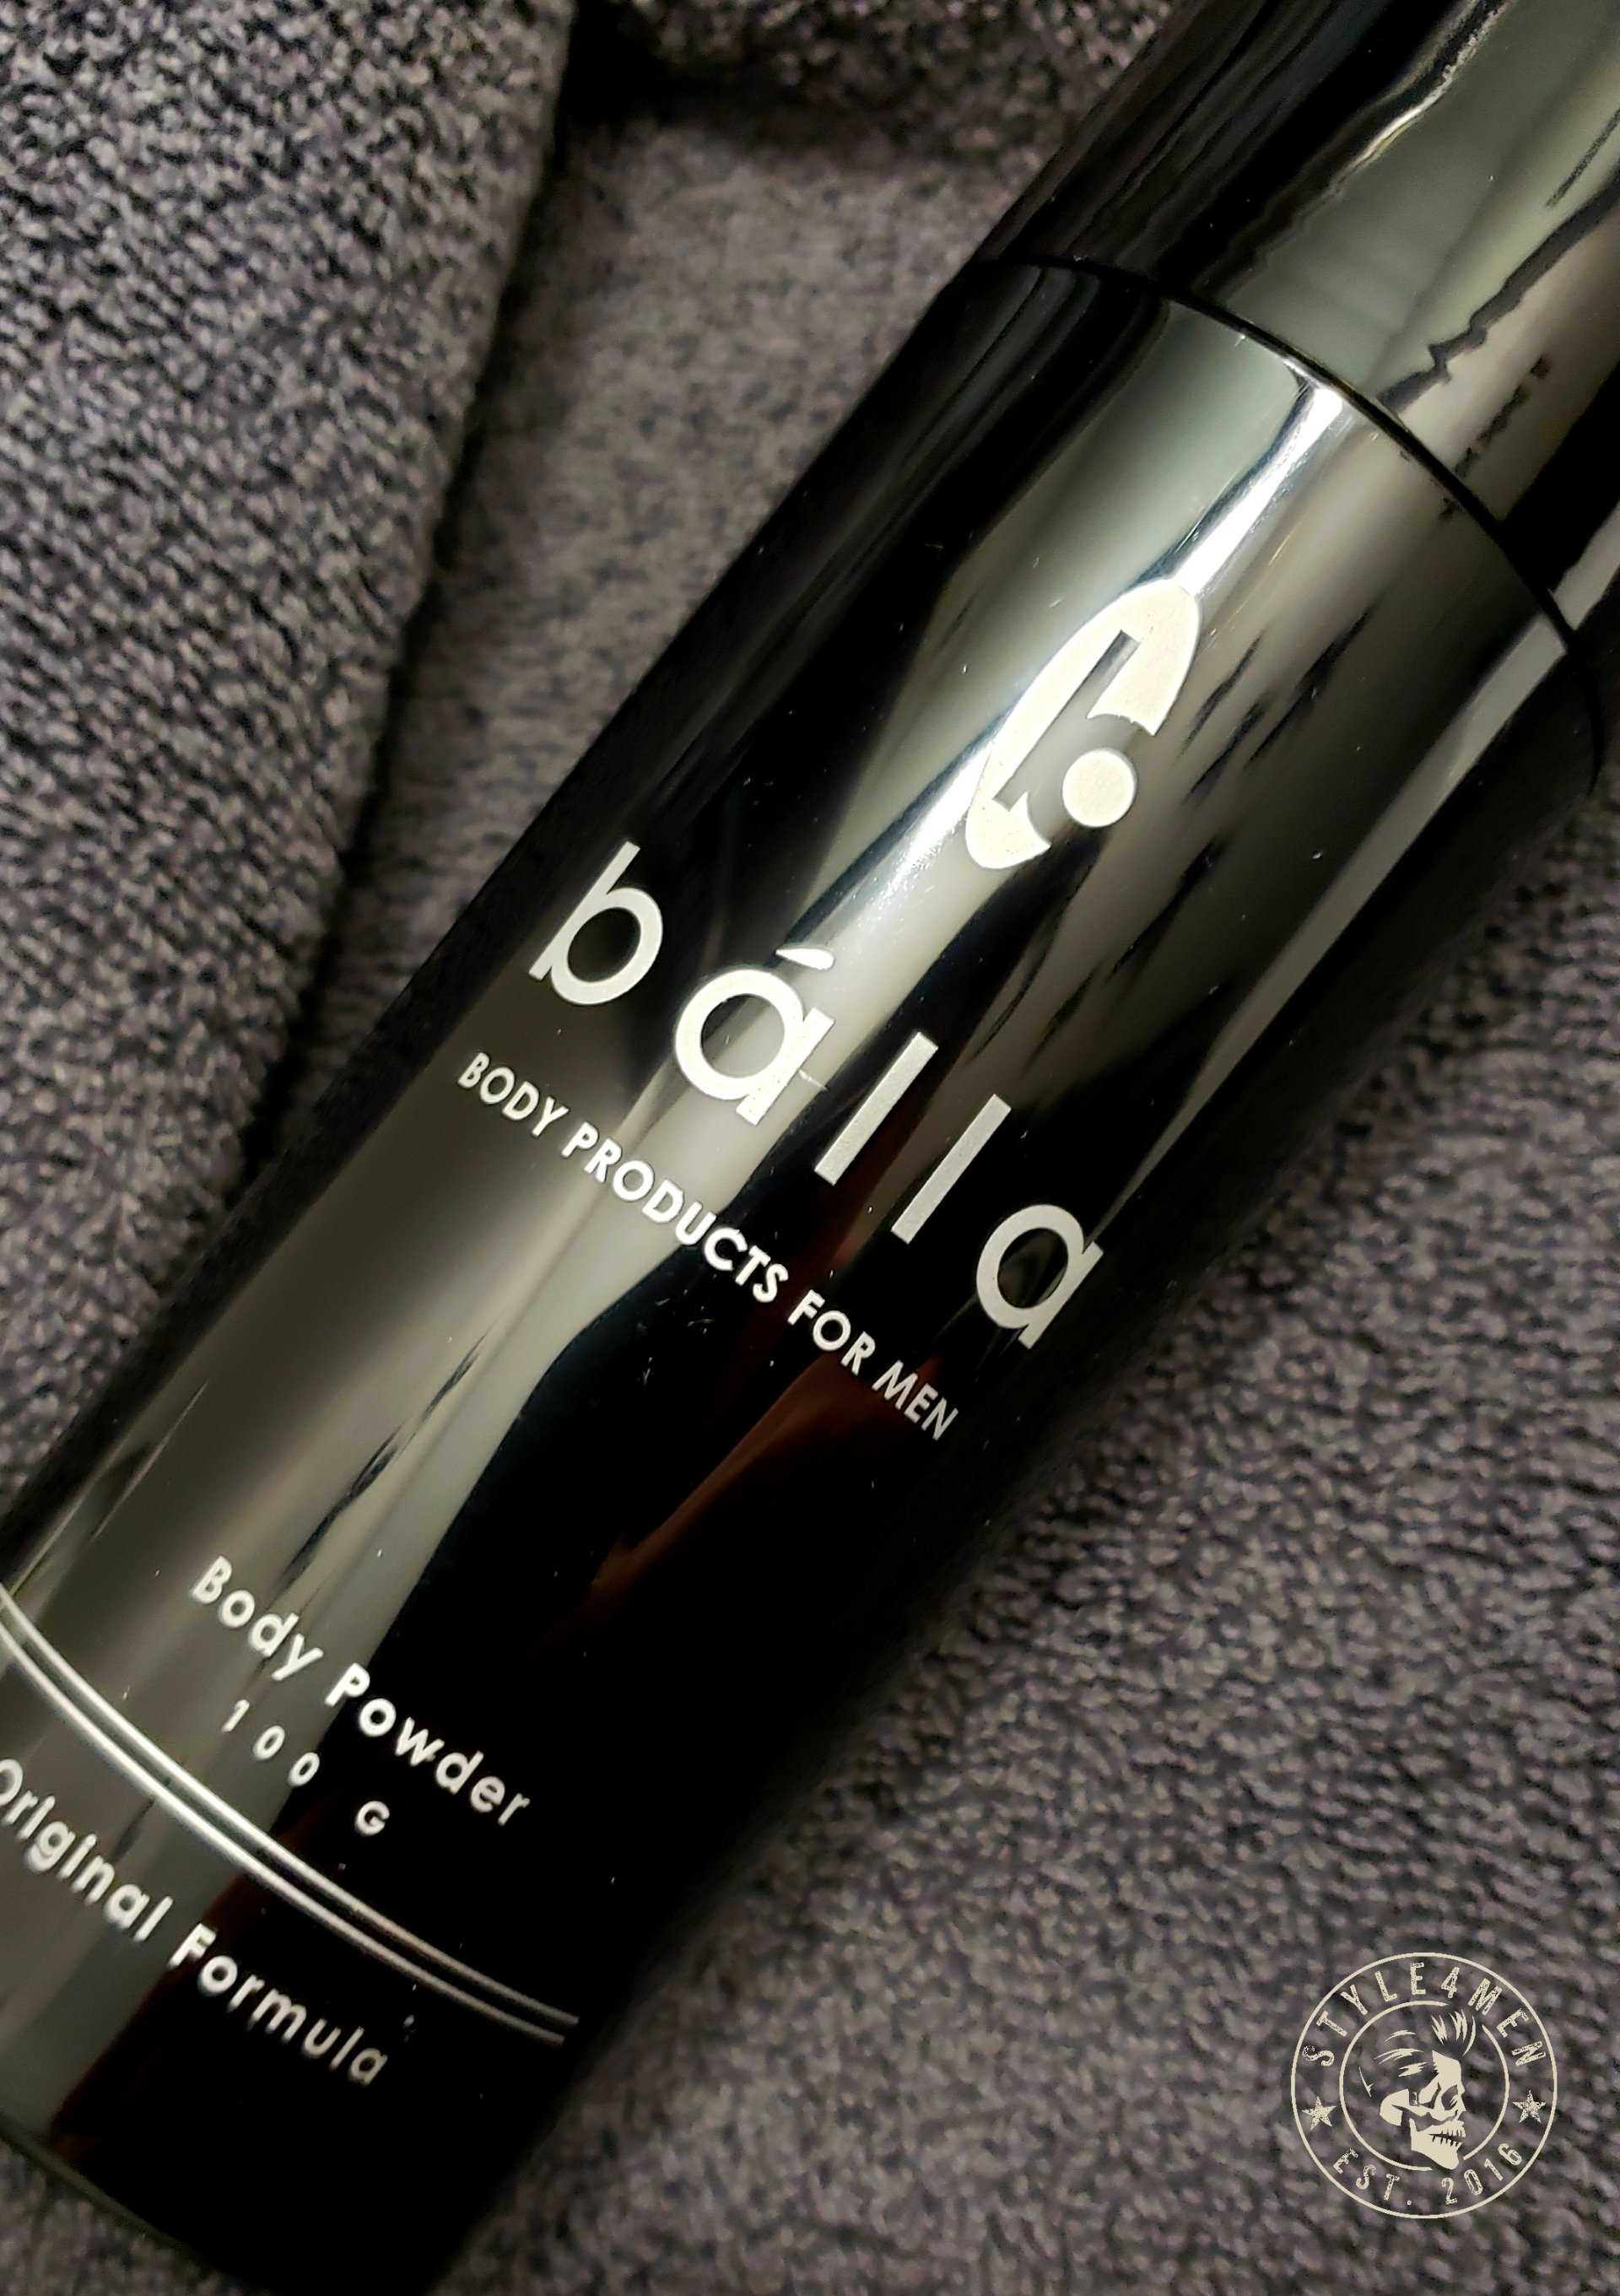 Classic Body Powders by Balla for Men